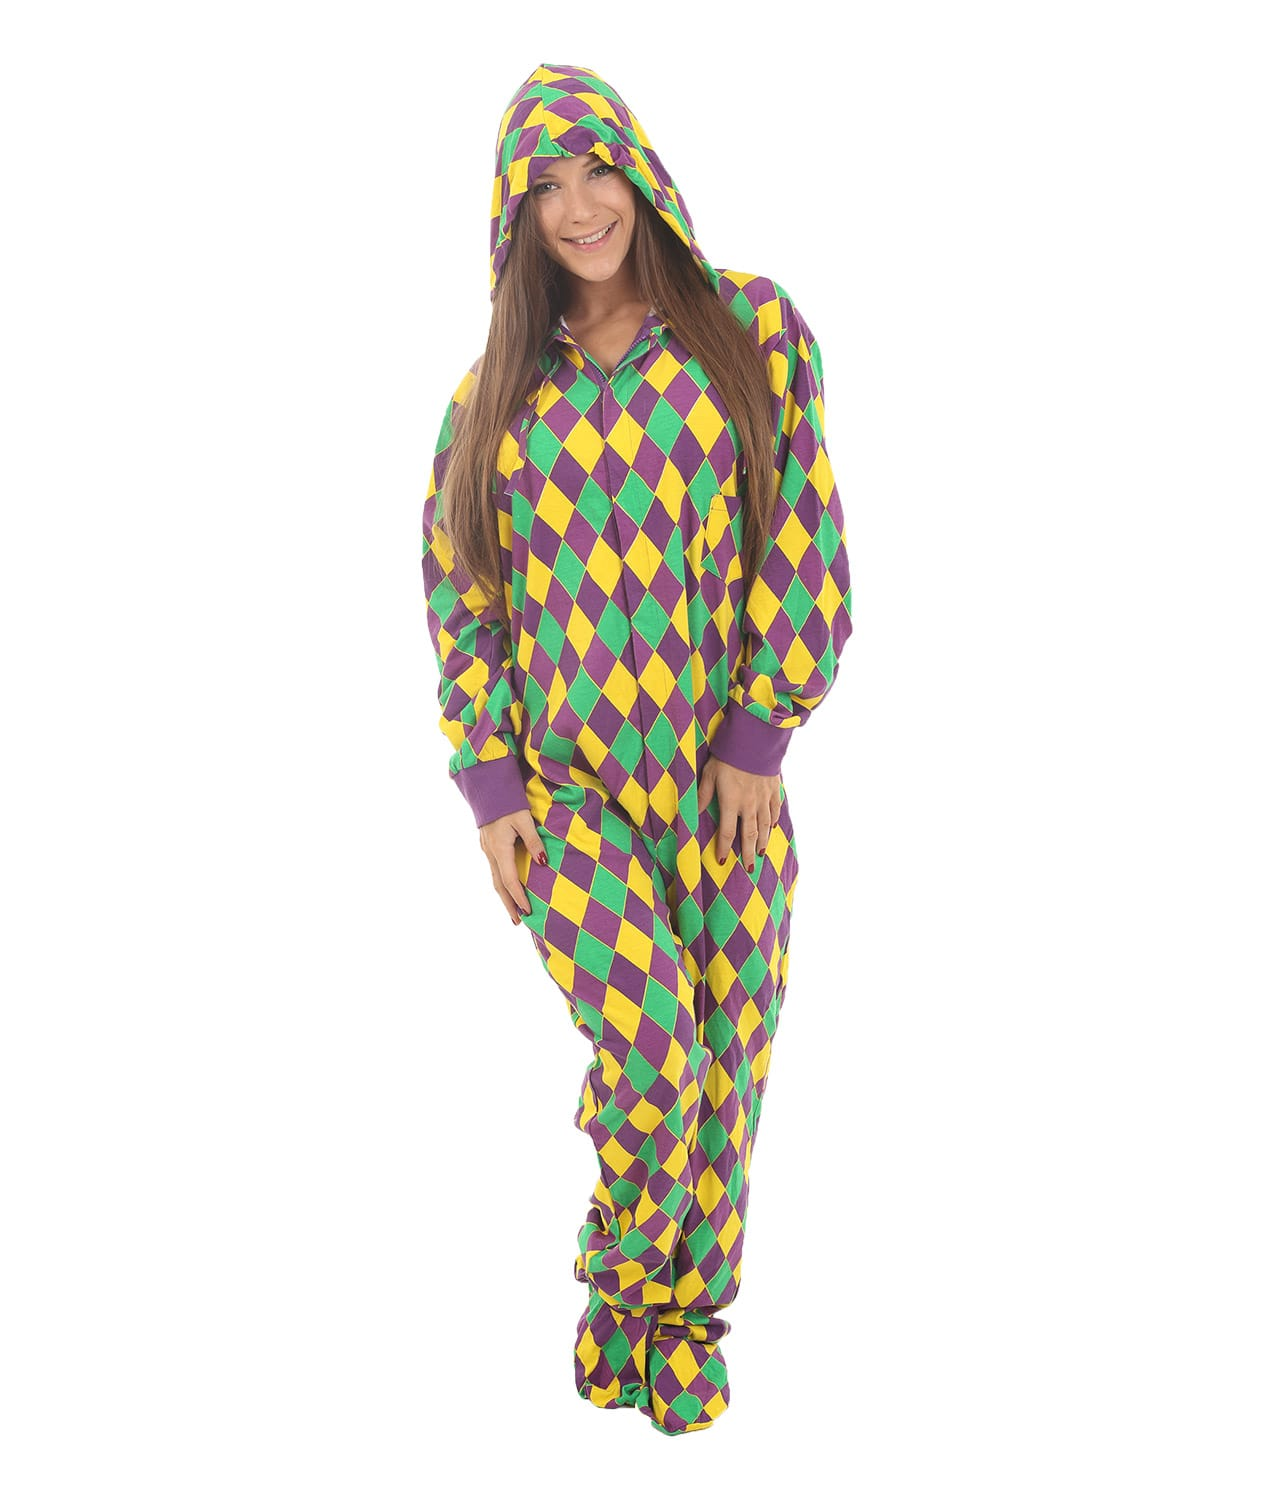 New Harlequin Footed Adult Onesie - The Mighty Quinn   Funzee